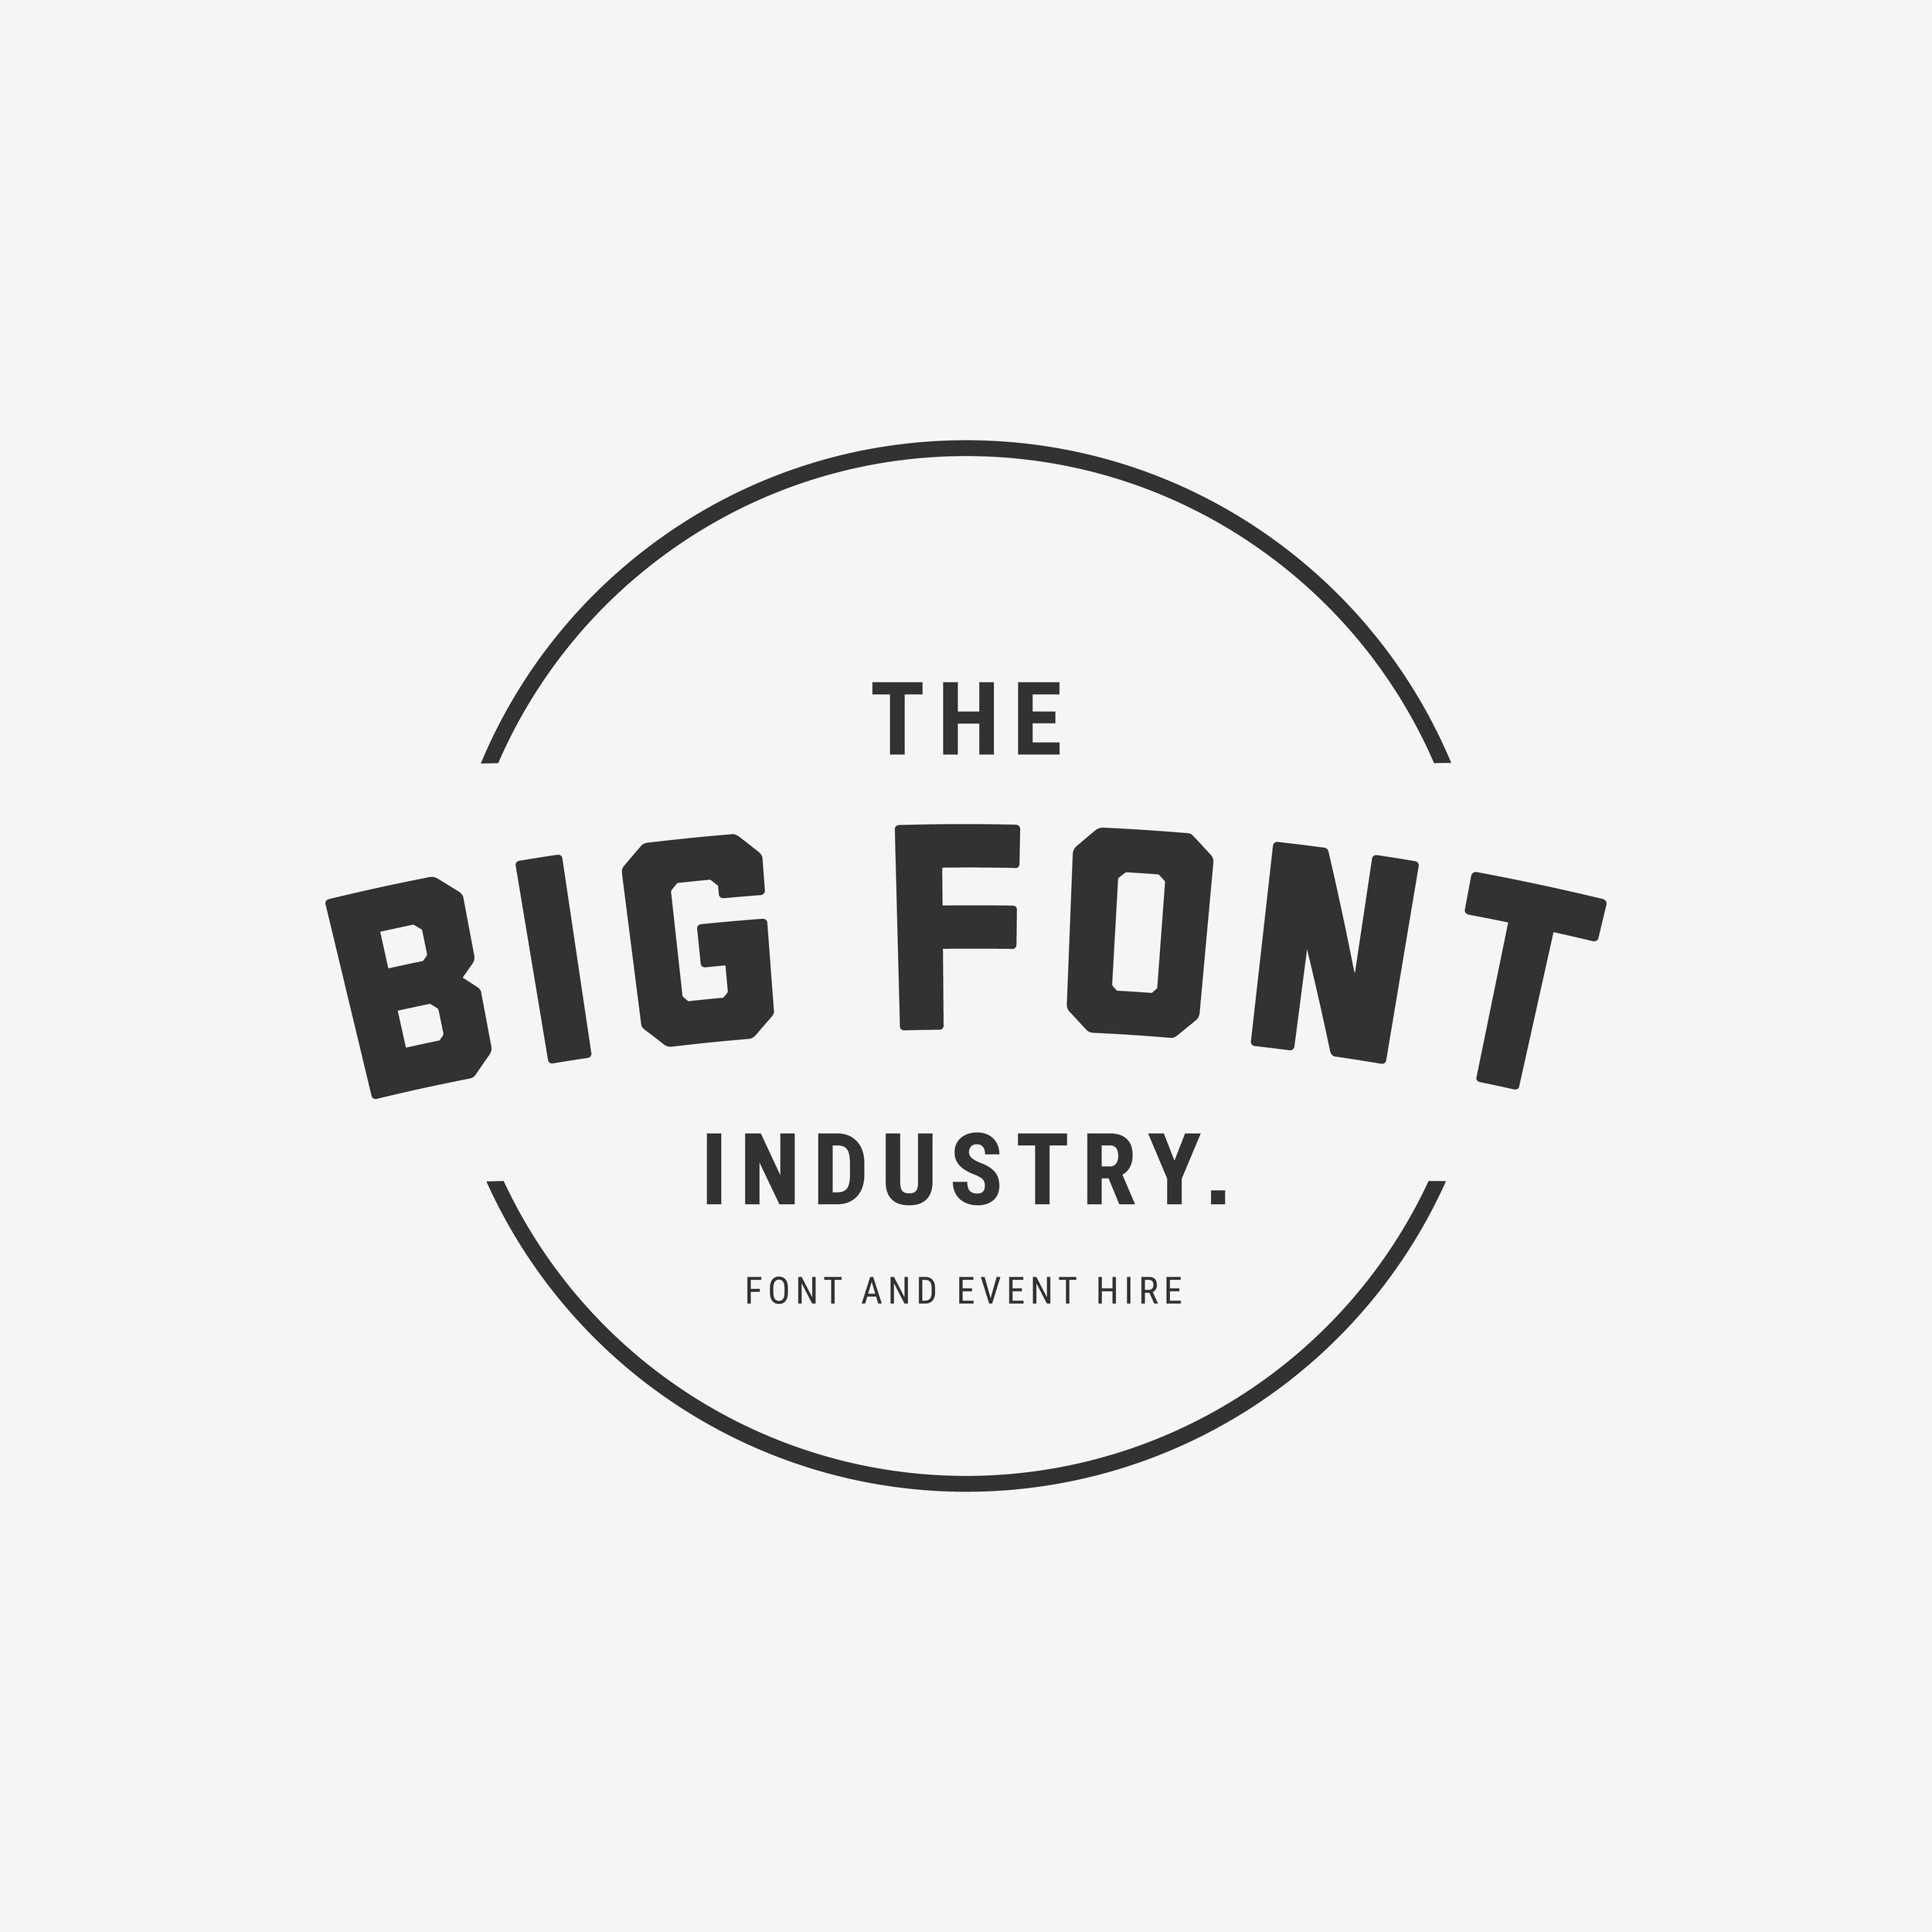 The Big Font Industry_2.jpg